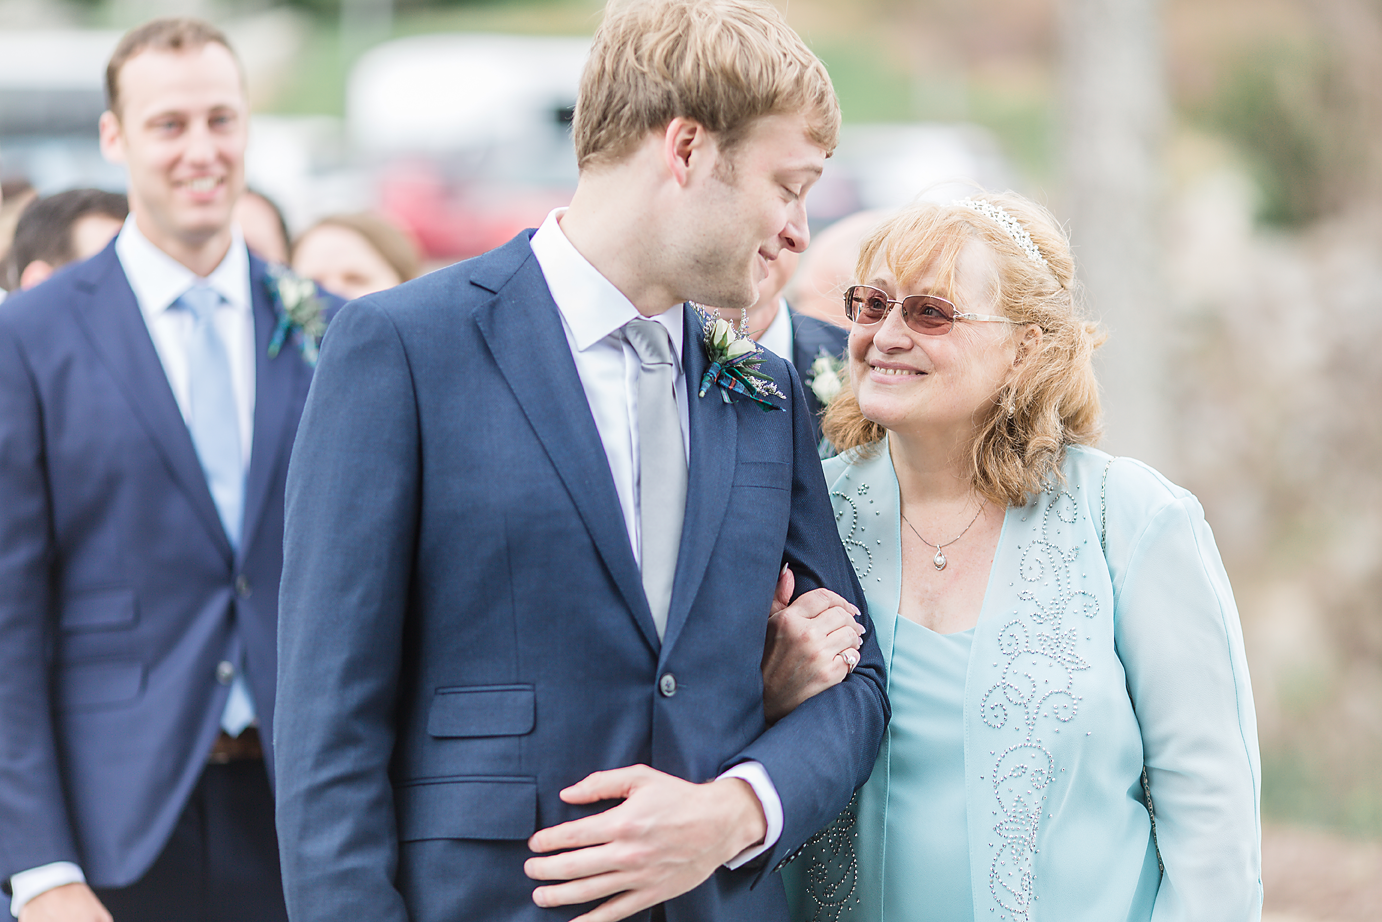 Dallas Wedding Photographer Glassy Mountain Chapel Greenville South Carolina scottish wedding best man and mother of groom kate marie portraiture.png